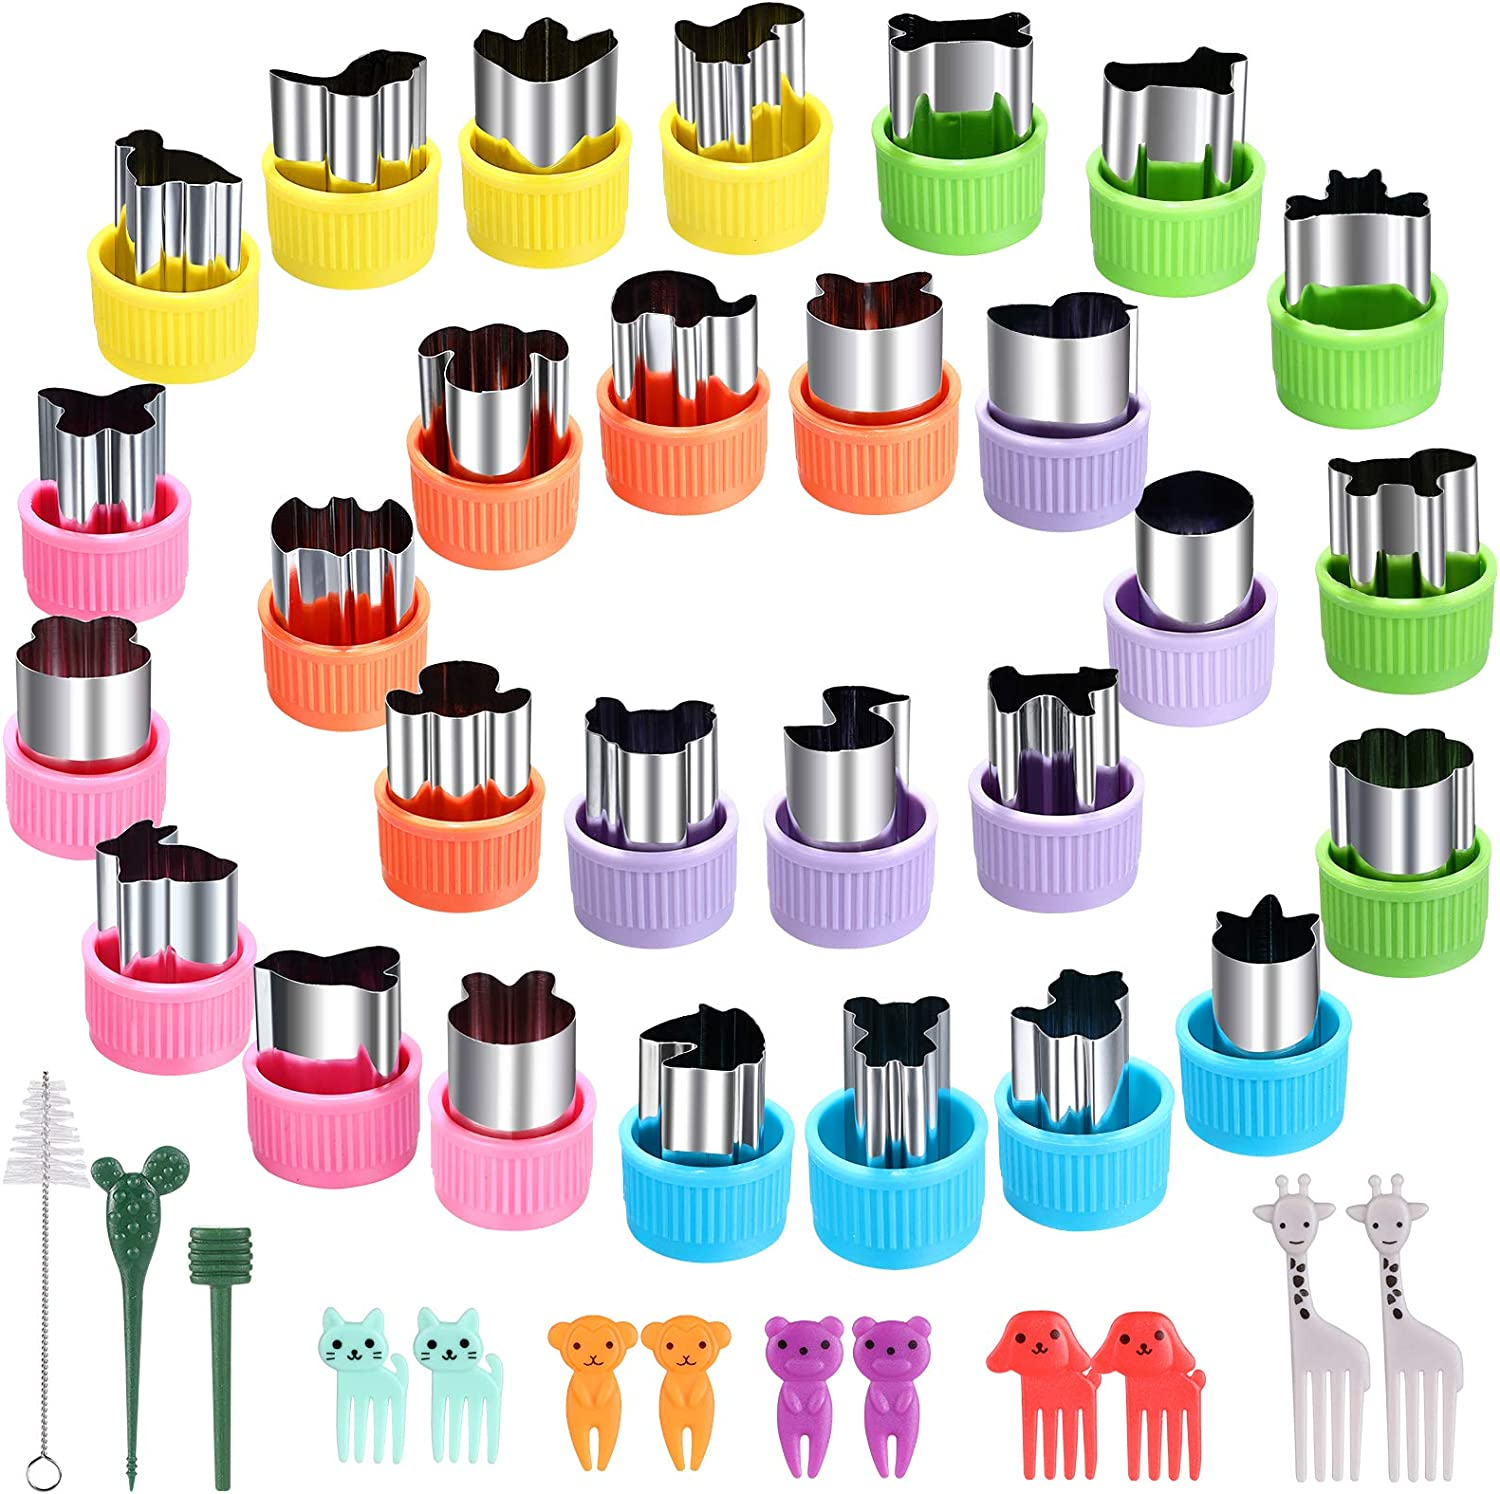 Vegetable Cutter Shapes Set - 28 Pcs Mini Sizes Cookie Cutters Set,for Kids Baking and Food Supplement Tools Accessories Crafts for Kitchen